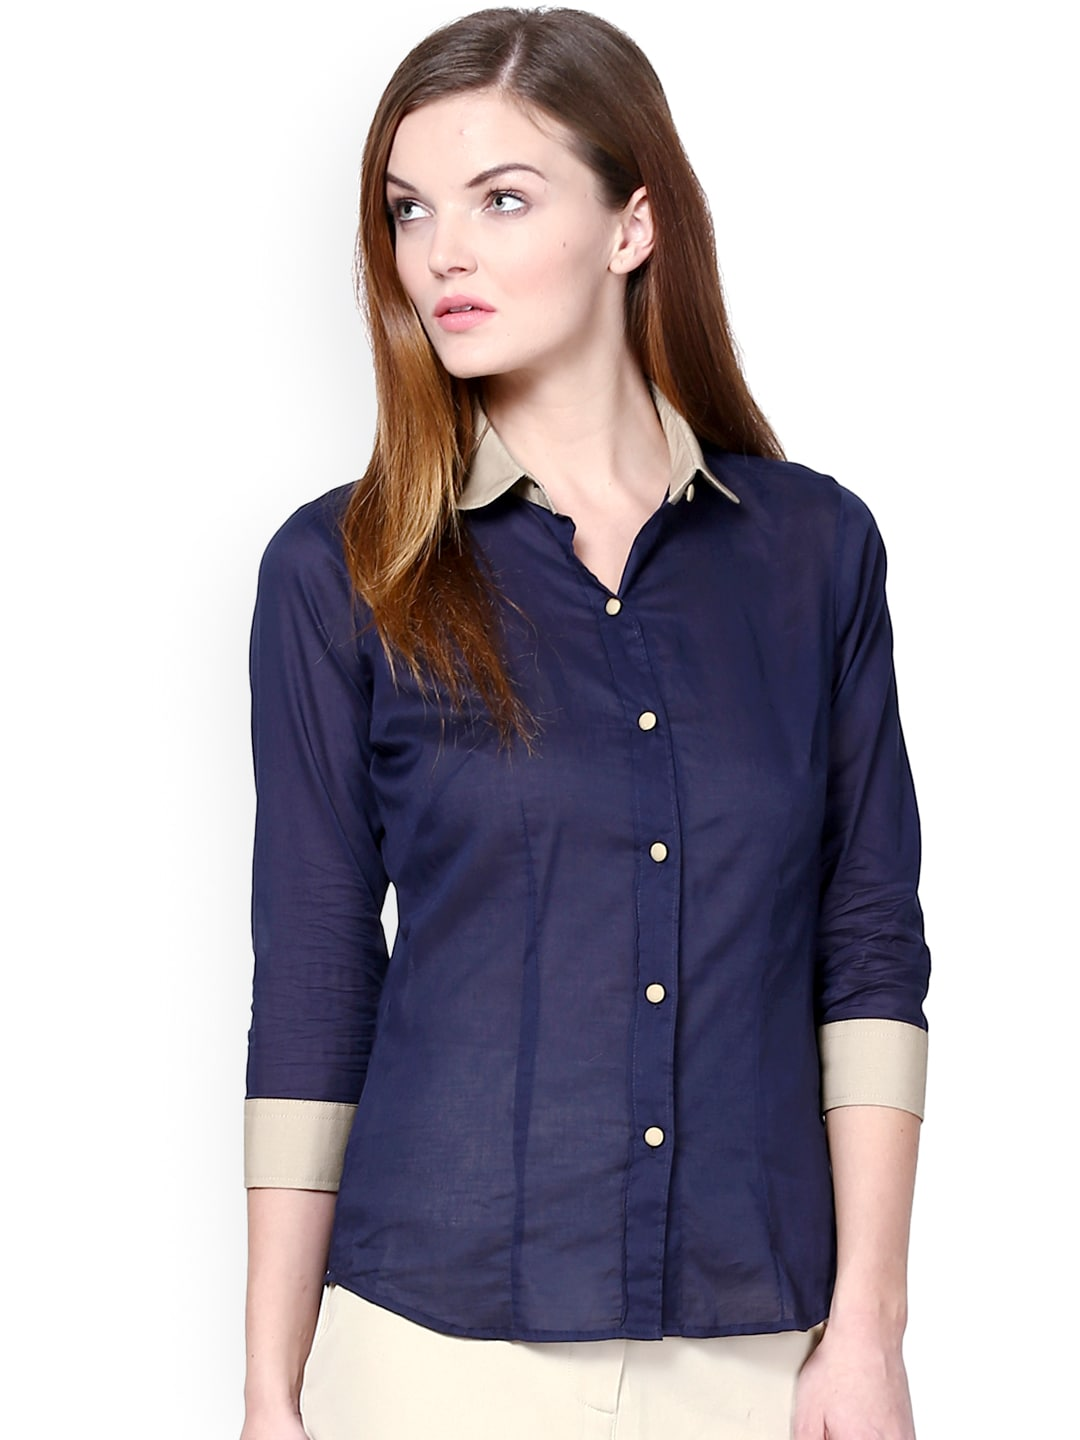 Designer Formal Shirts For Girls